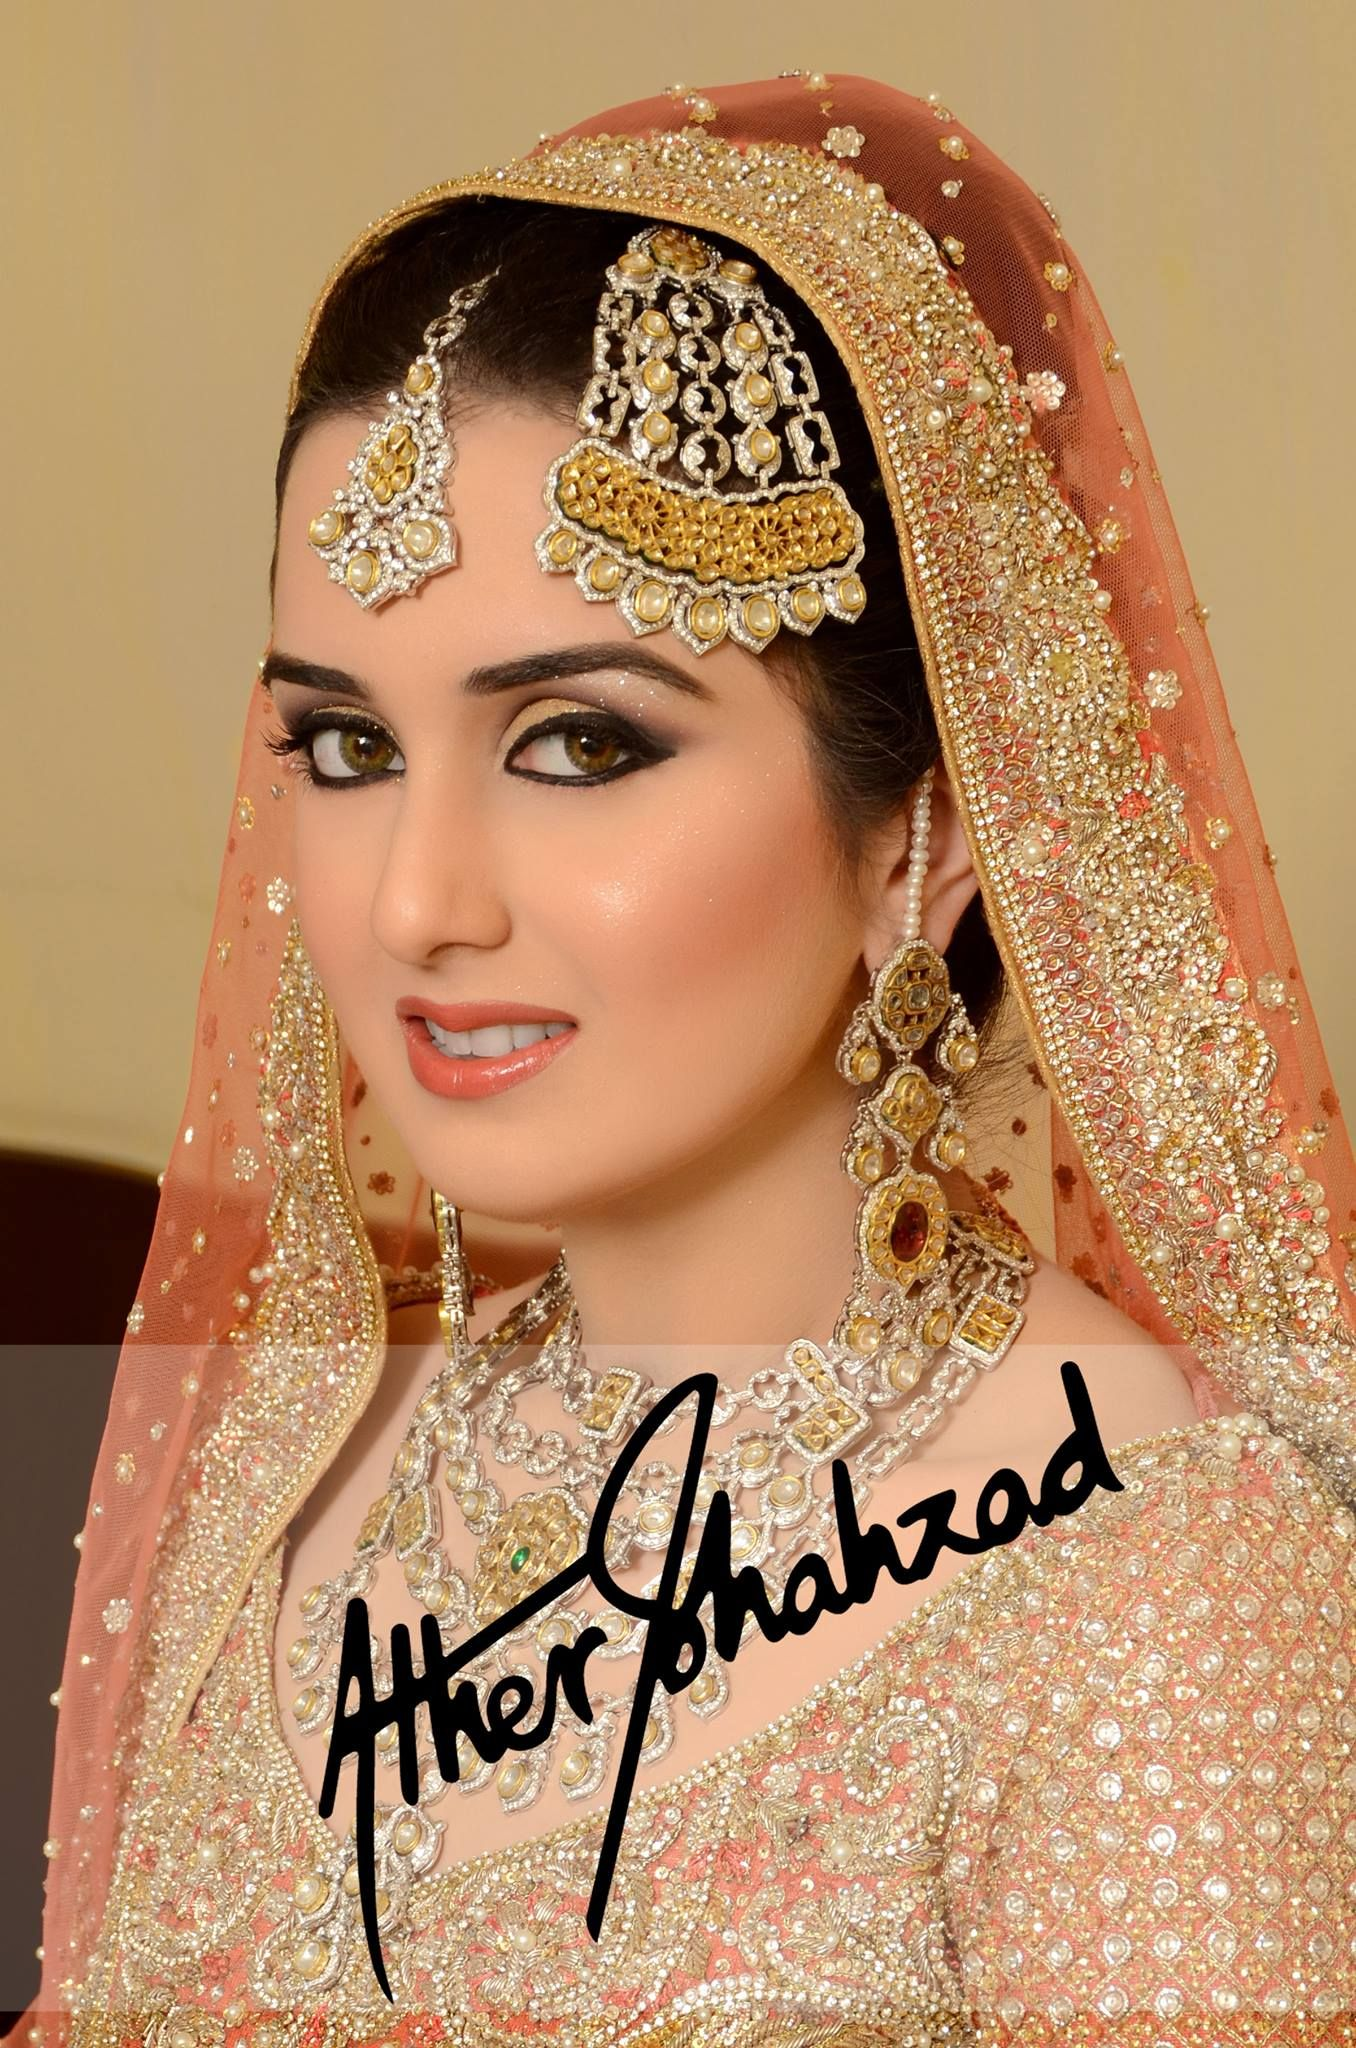 Makeup And Photography By Ather Shahzad Bridal Makeup Beautiful Bridals Dress Jewelry